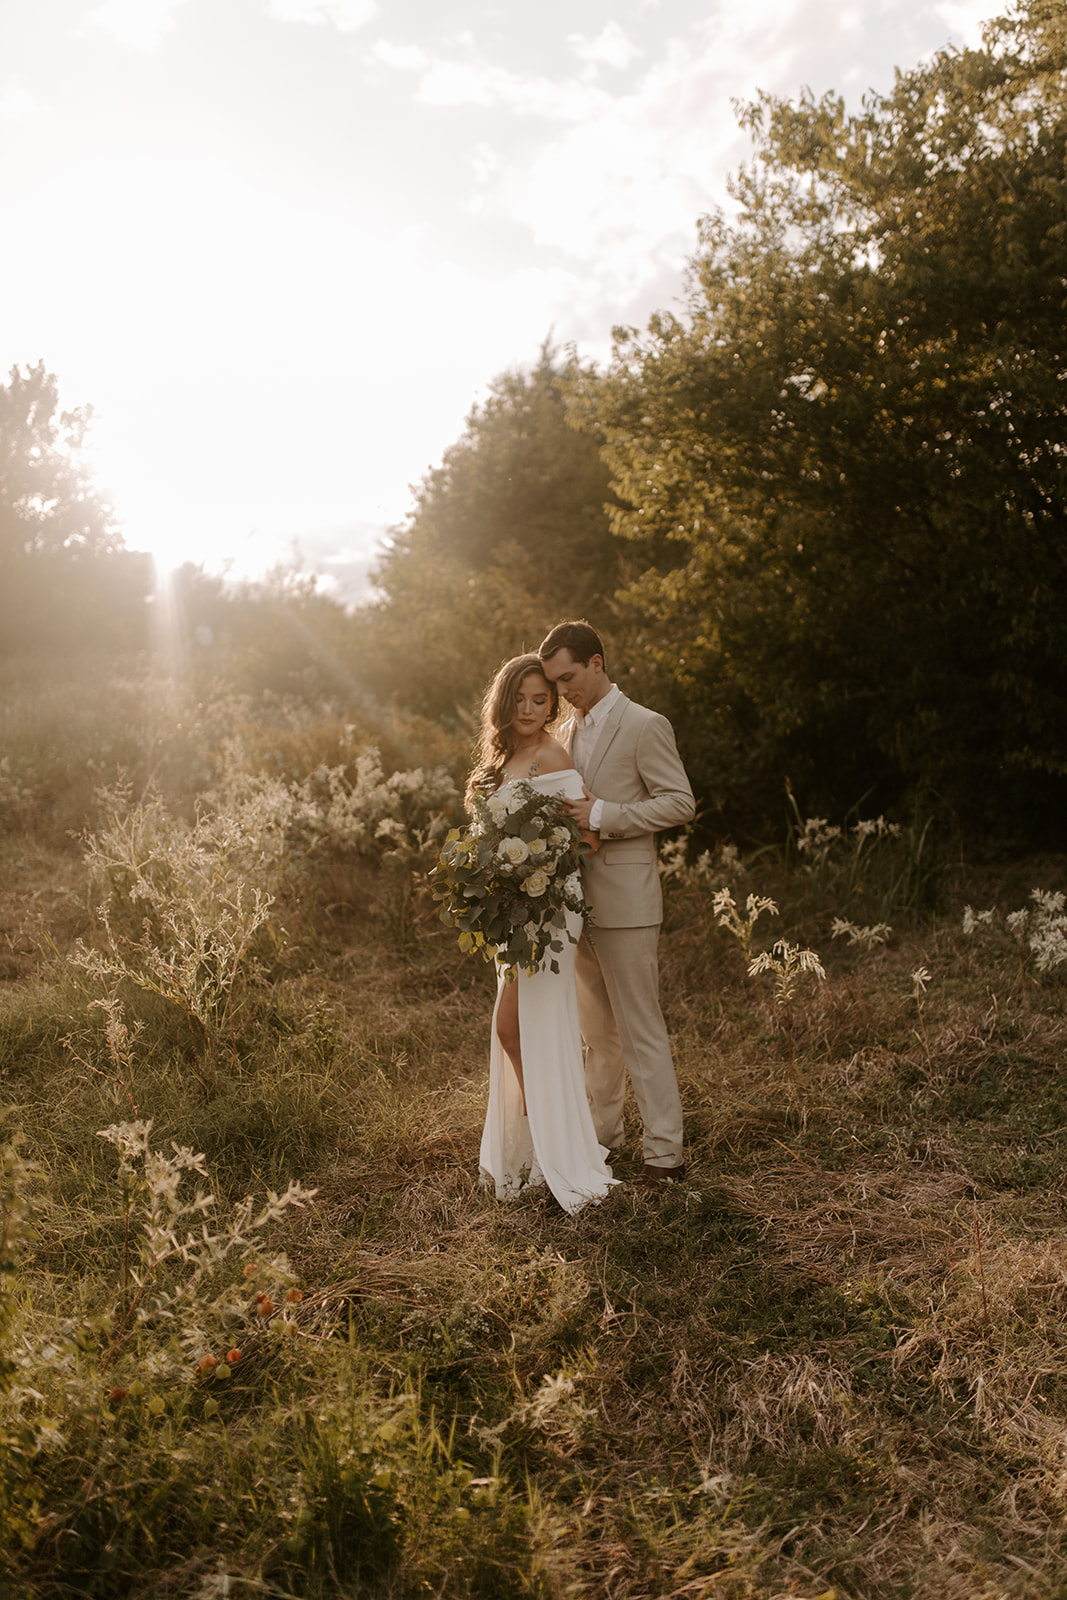 Winter-Fall Elopement- Meme Urbane Photography photos-9.jpg